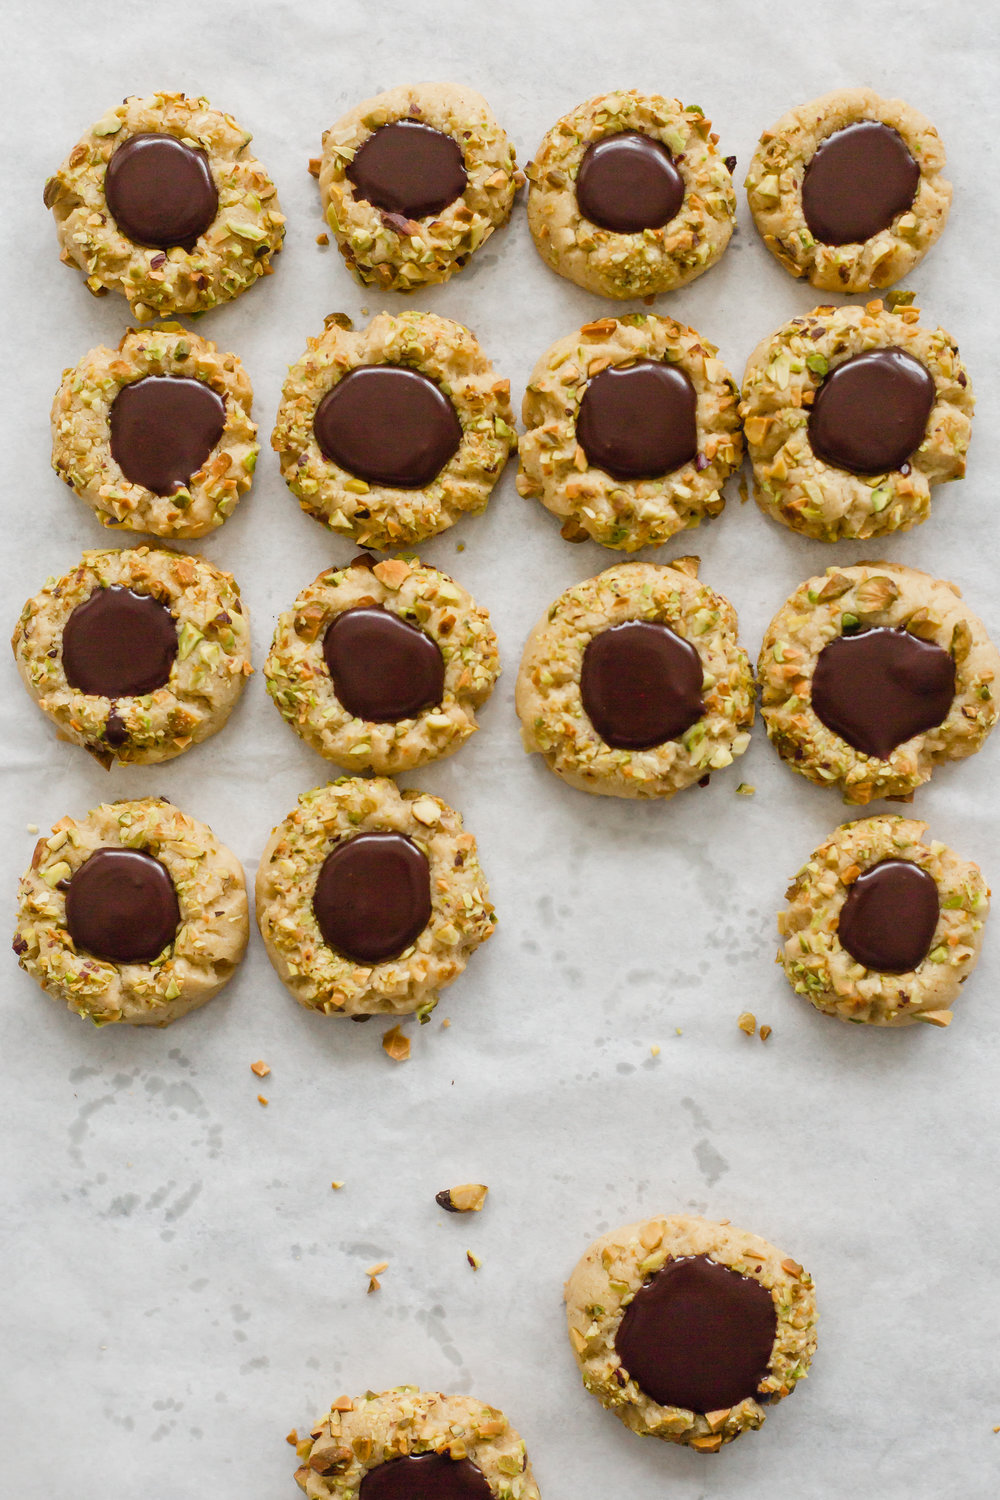 pistachio_chocolate_thumbprints-14.jpg